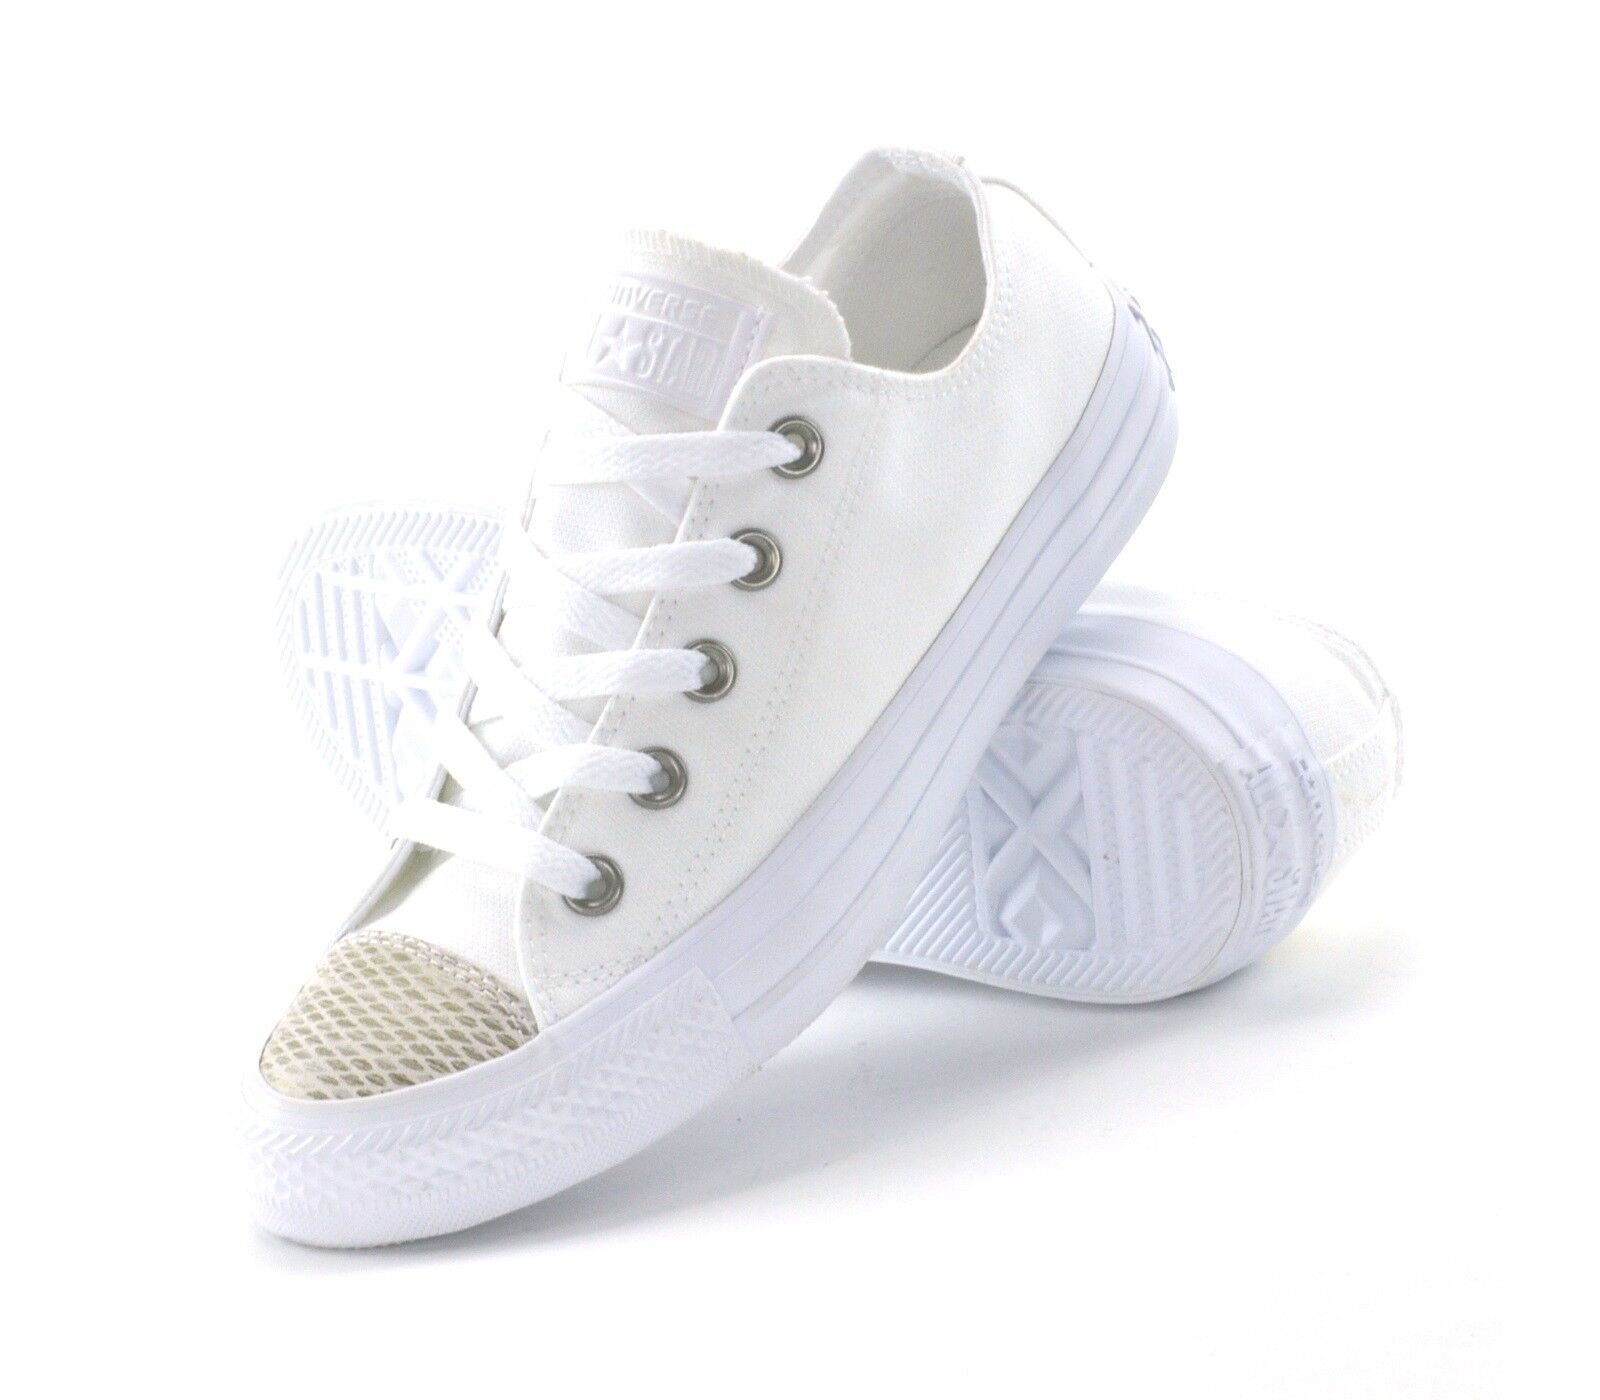 CONVERSE CT AS PRINTED TOE OX  - damen Turnschuhe - 557985C - Weiß - BRAND NEW